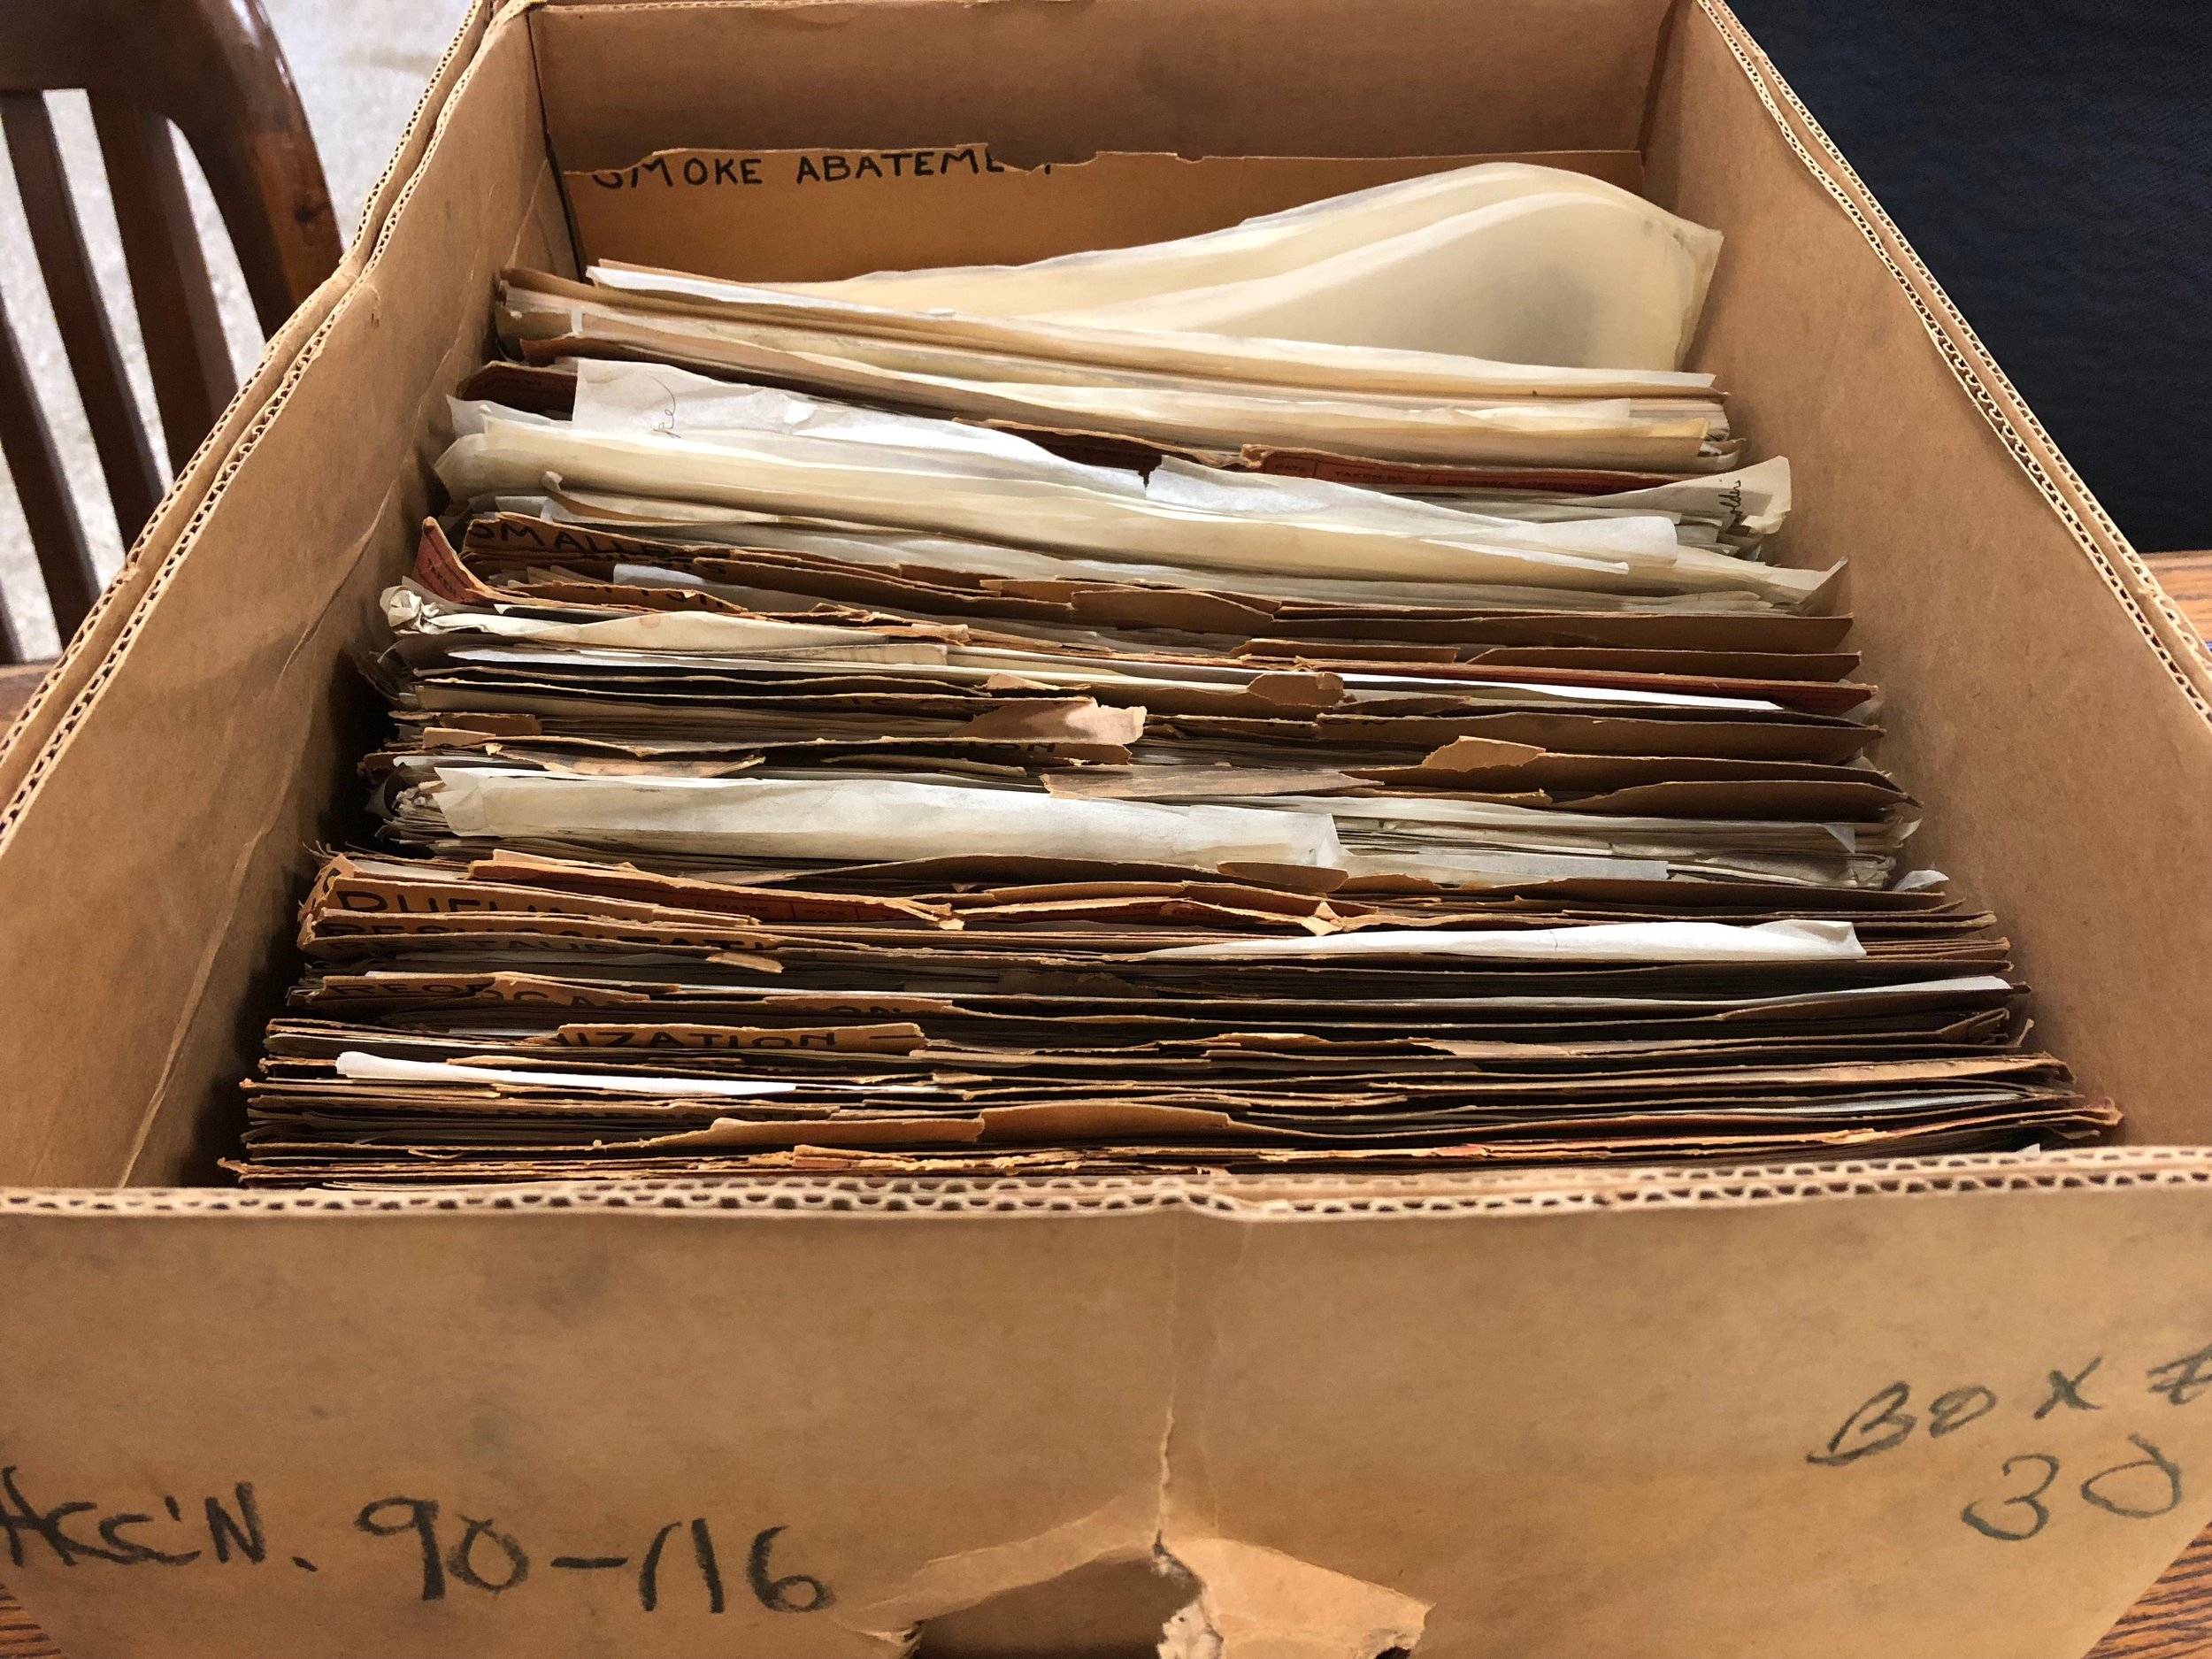 Unprocessed records of Health Commissioner Wynne (1928-1933)